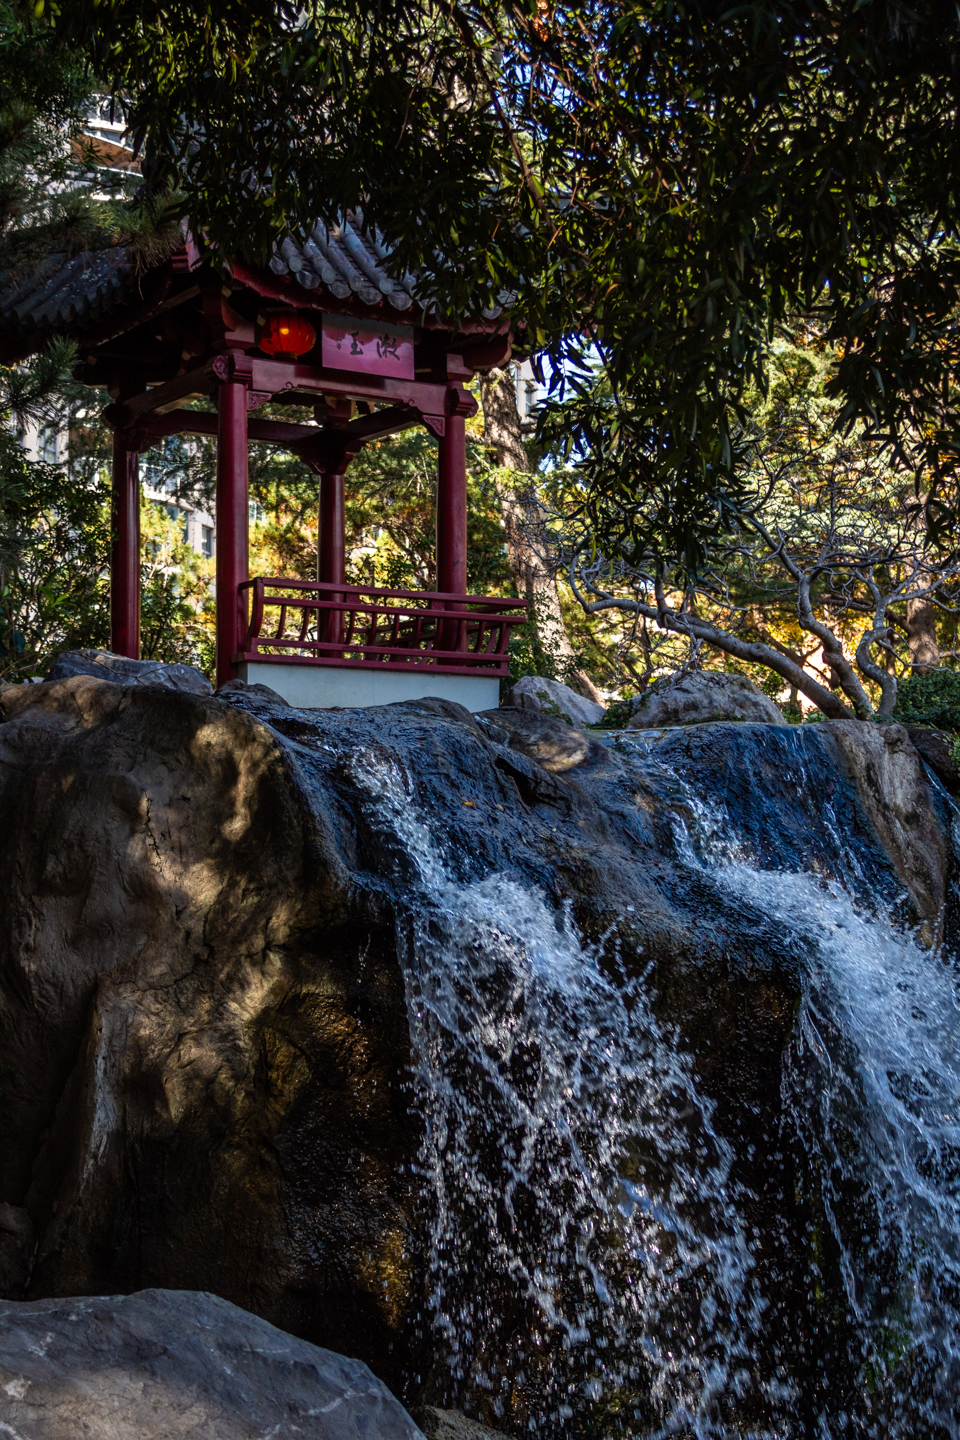 CRH_2018_CHINESE_GARDEN_OF_FRIENDSHIP_3057.jpg